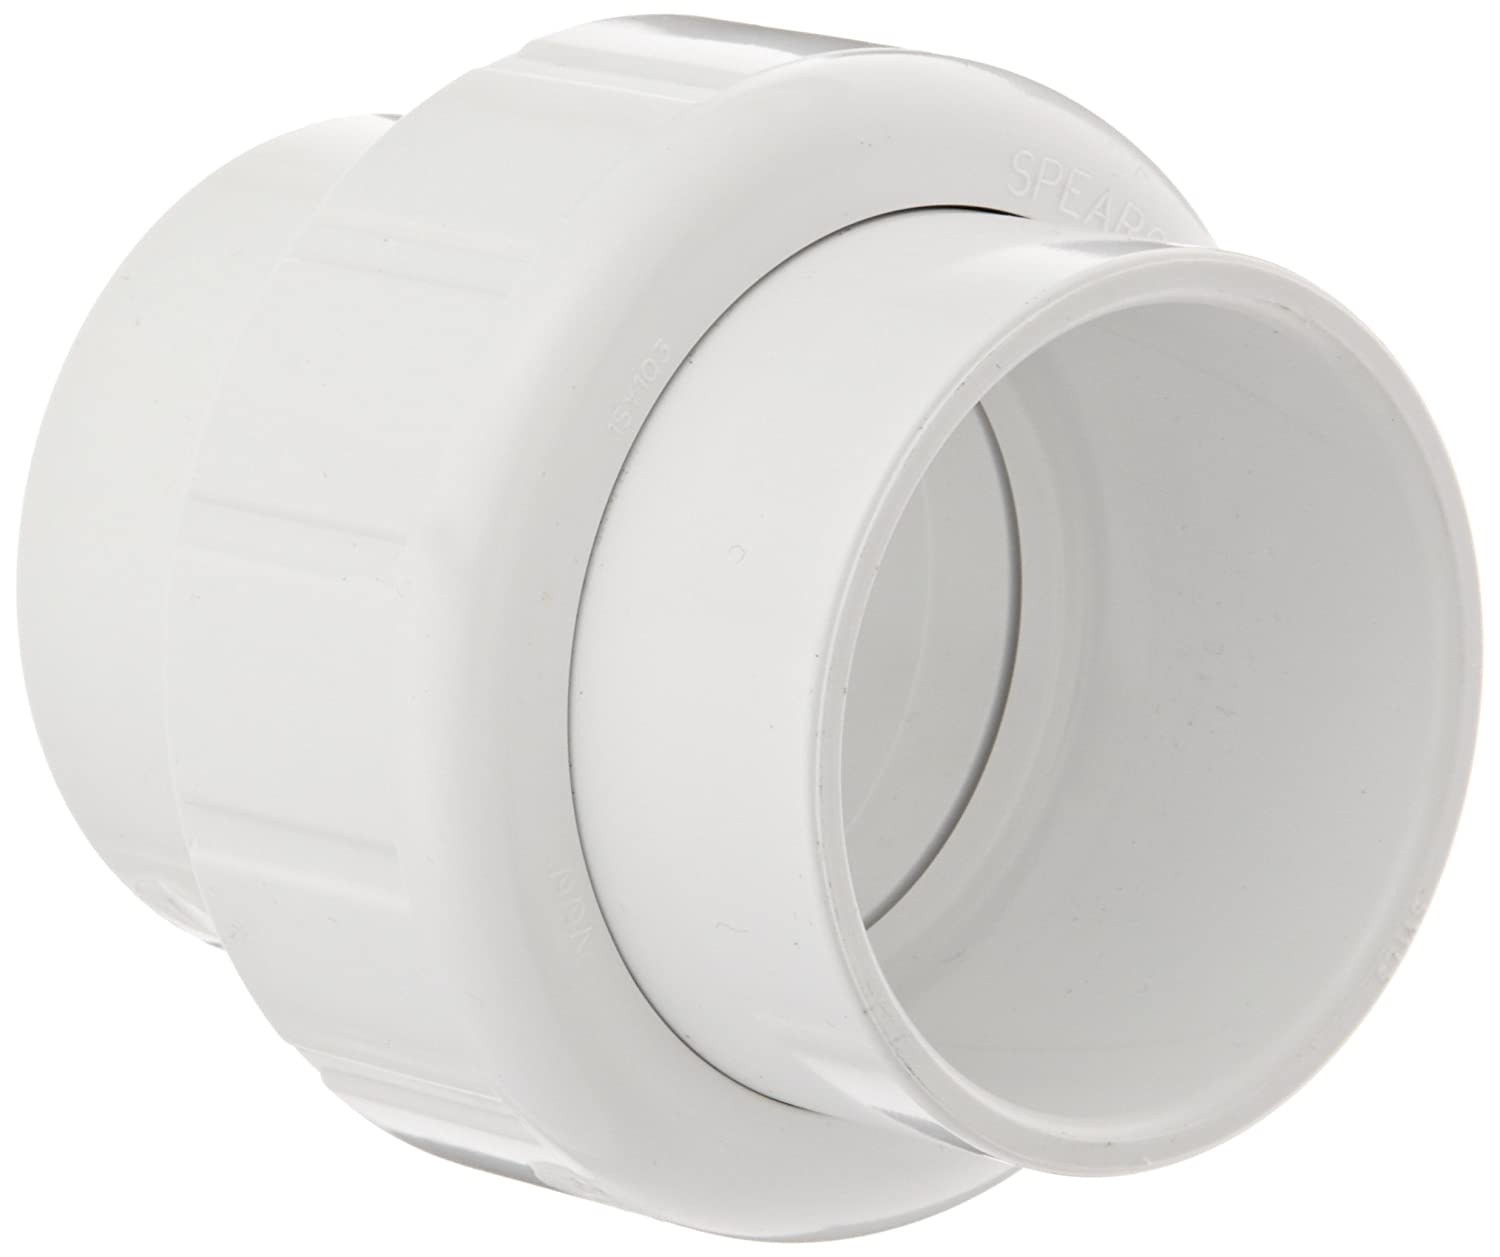 Spears 497 Series PVC Pipe Fitting, Union with EPDM O-Ring, Schedule 40, 1 Socket 1 Socket Spears Manufacturing 497-010